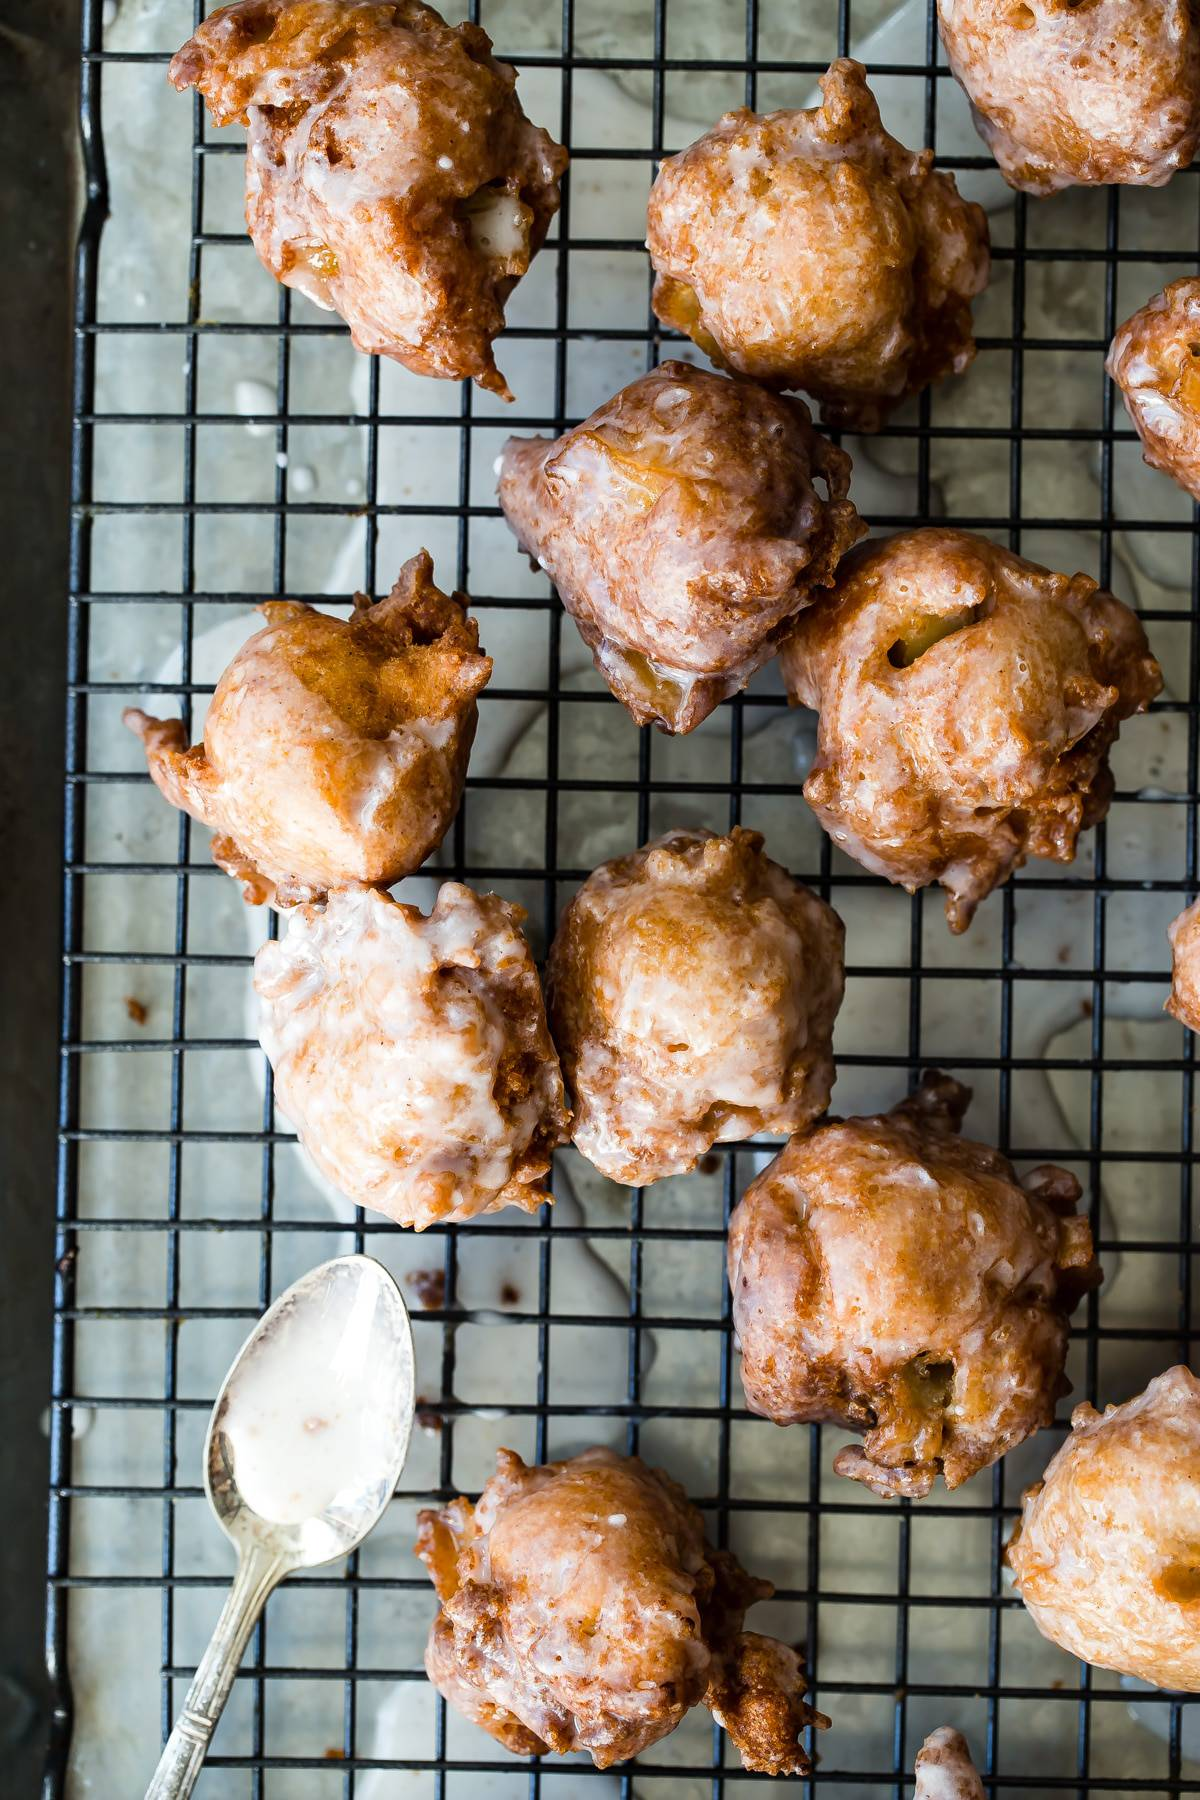 Delicious pumpkin spiced apple fritters drenched in a sweet vanilla glaze! These are so easy to make and so easy to pop more than one in your mouth! #doughnuts #donuts #applefritters #sweets #dessert #foodnessgracious